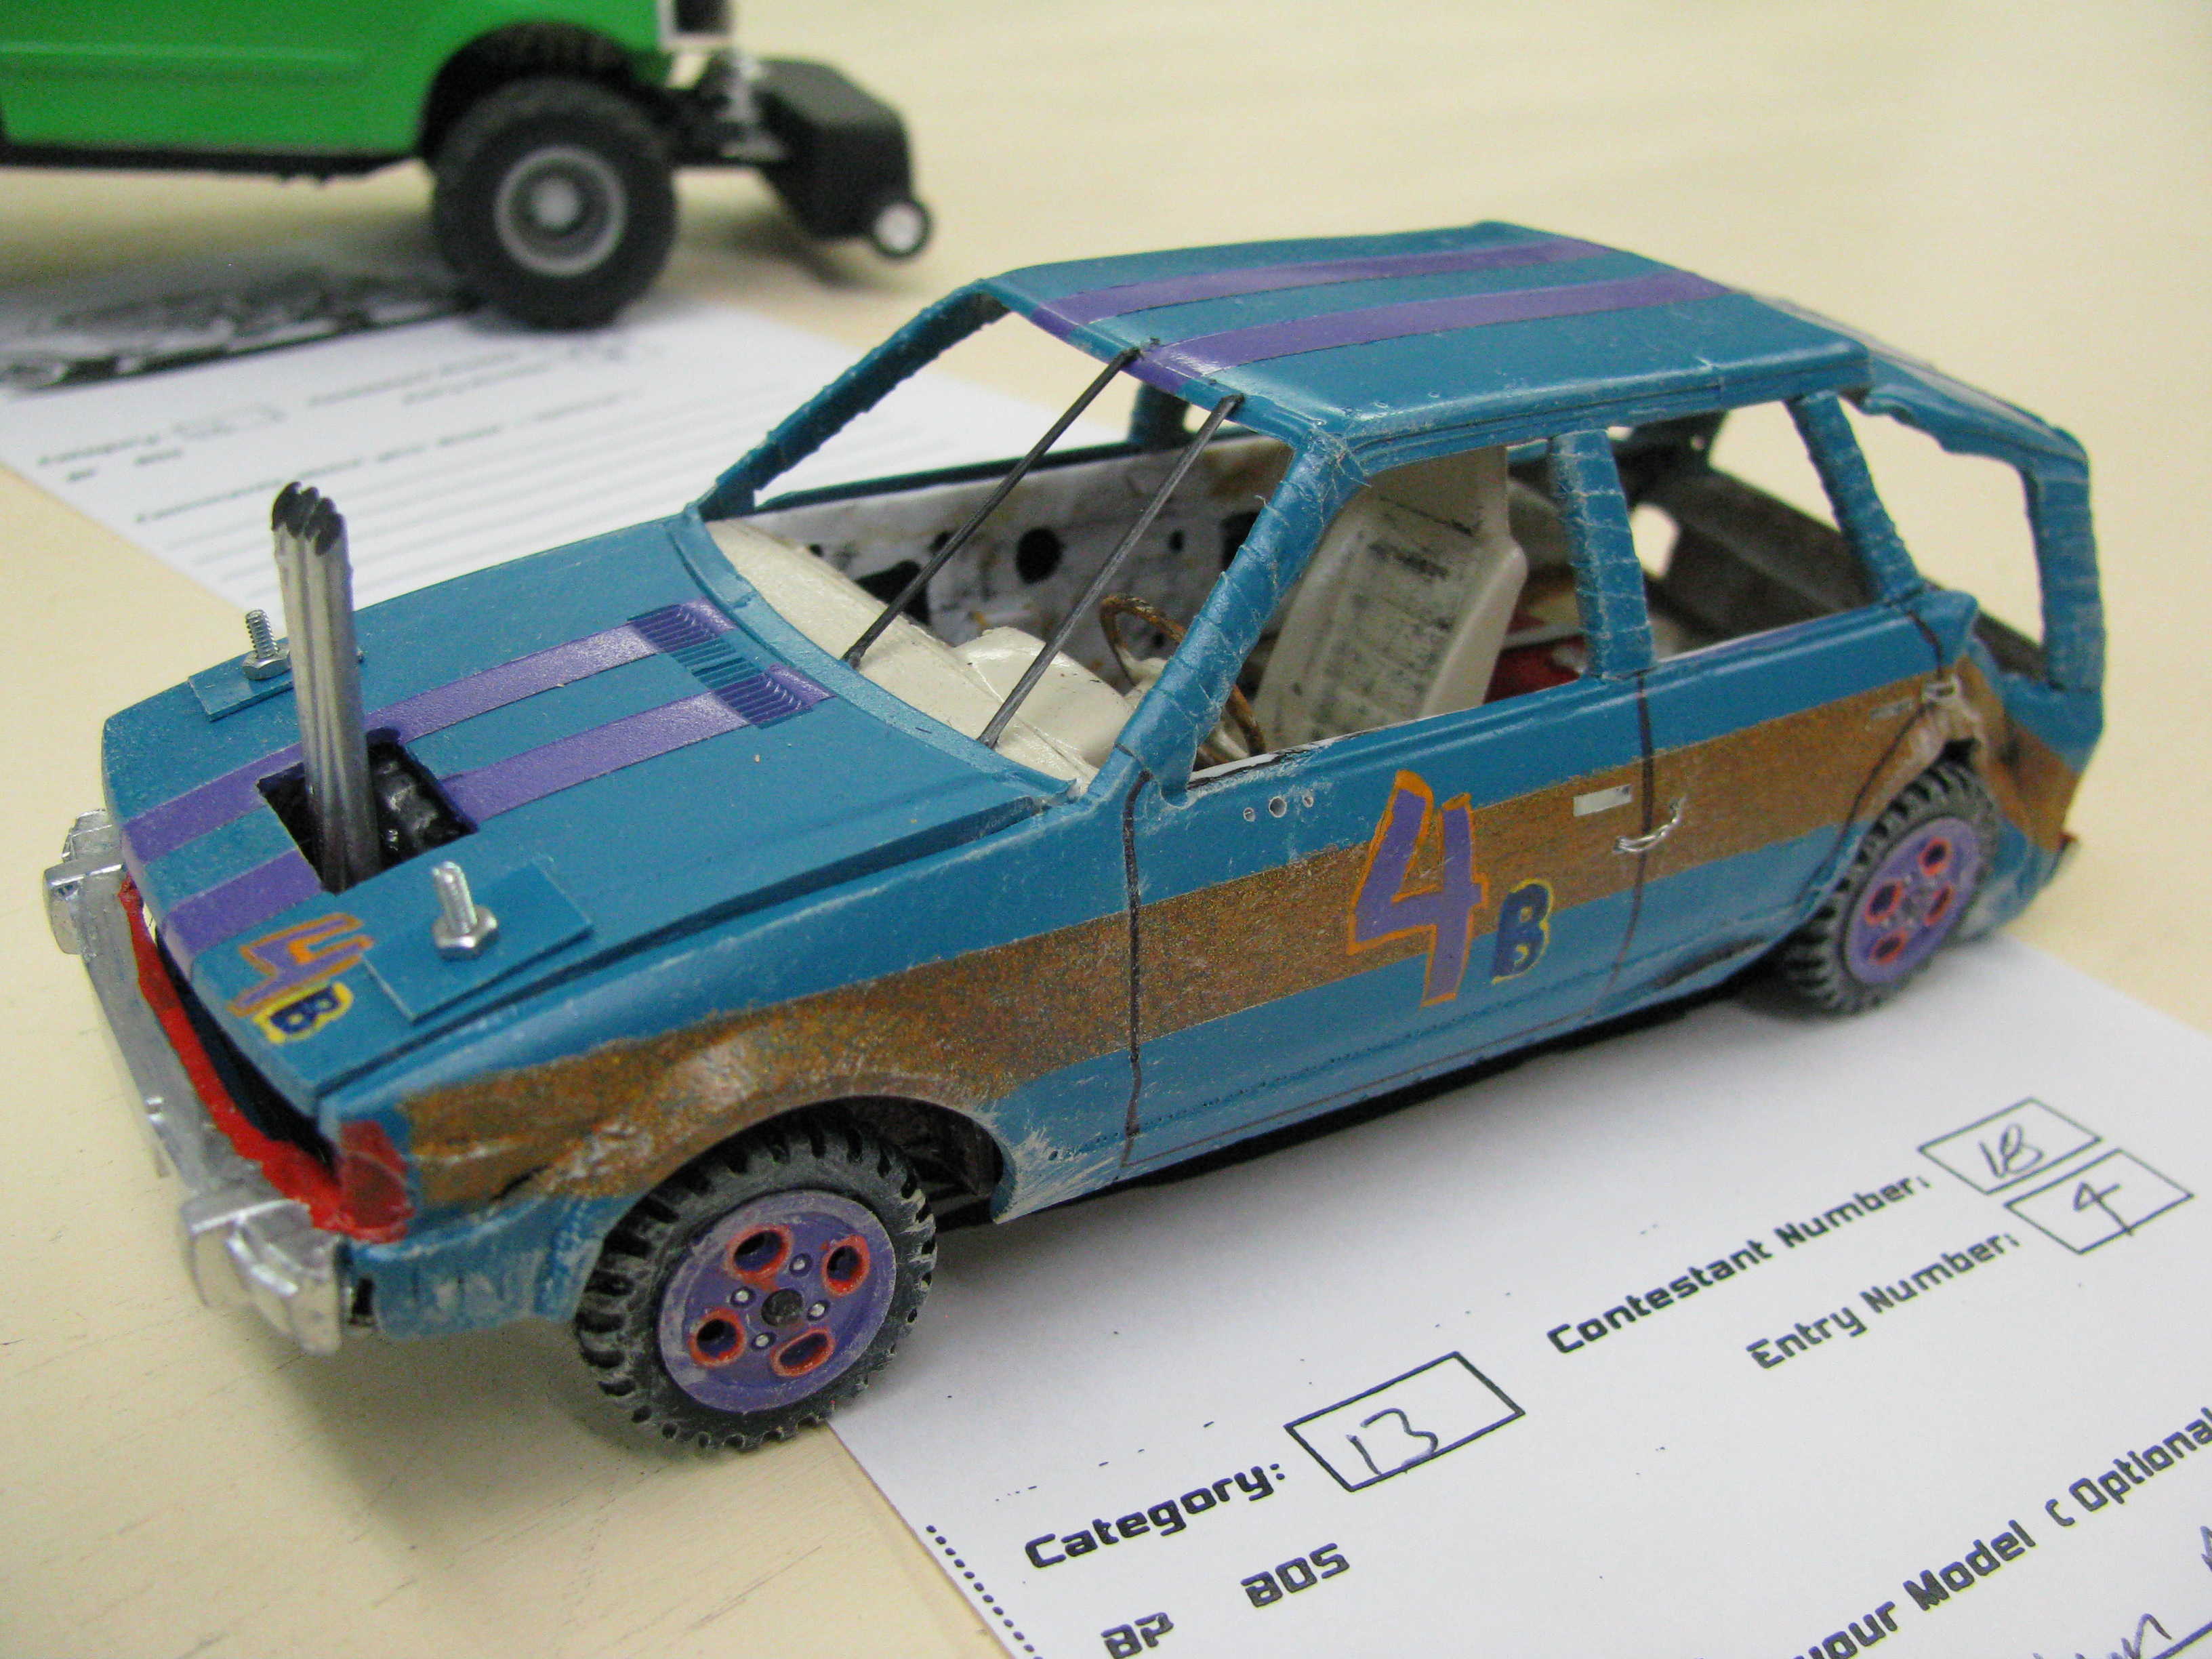 View photo of 1985 Ford Escort Station Wagon Demolition Derby Model Car ...